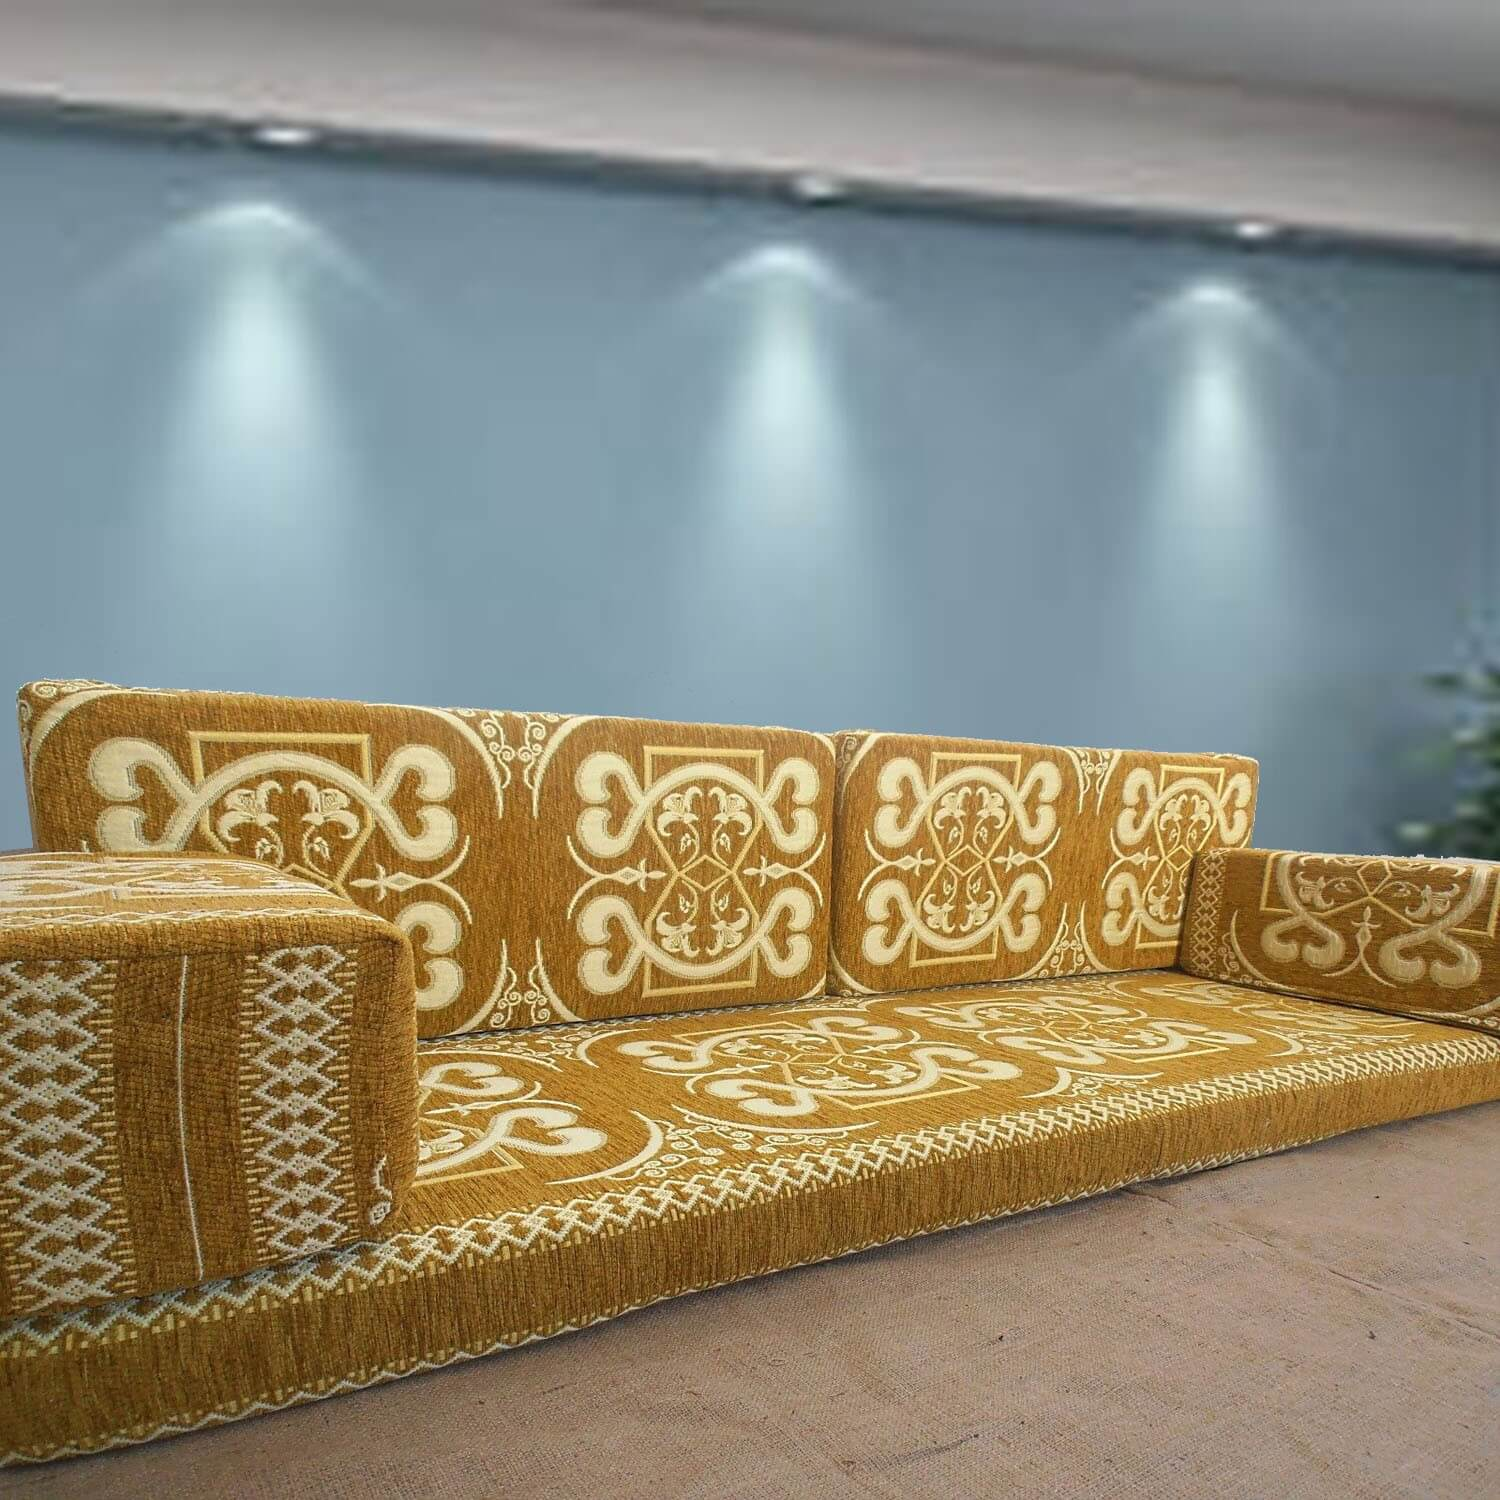 Floor sofa with double back pillows - SHI_FS207